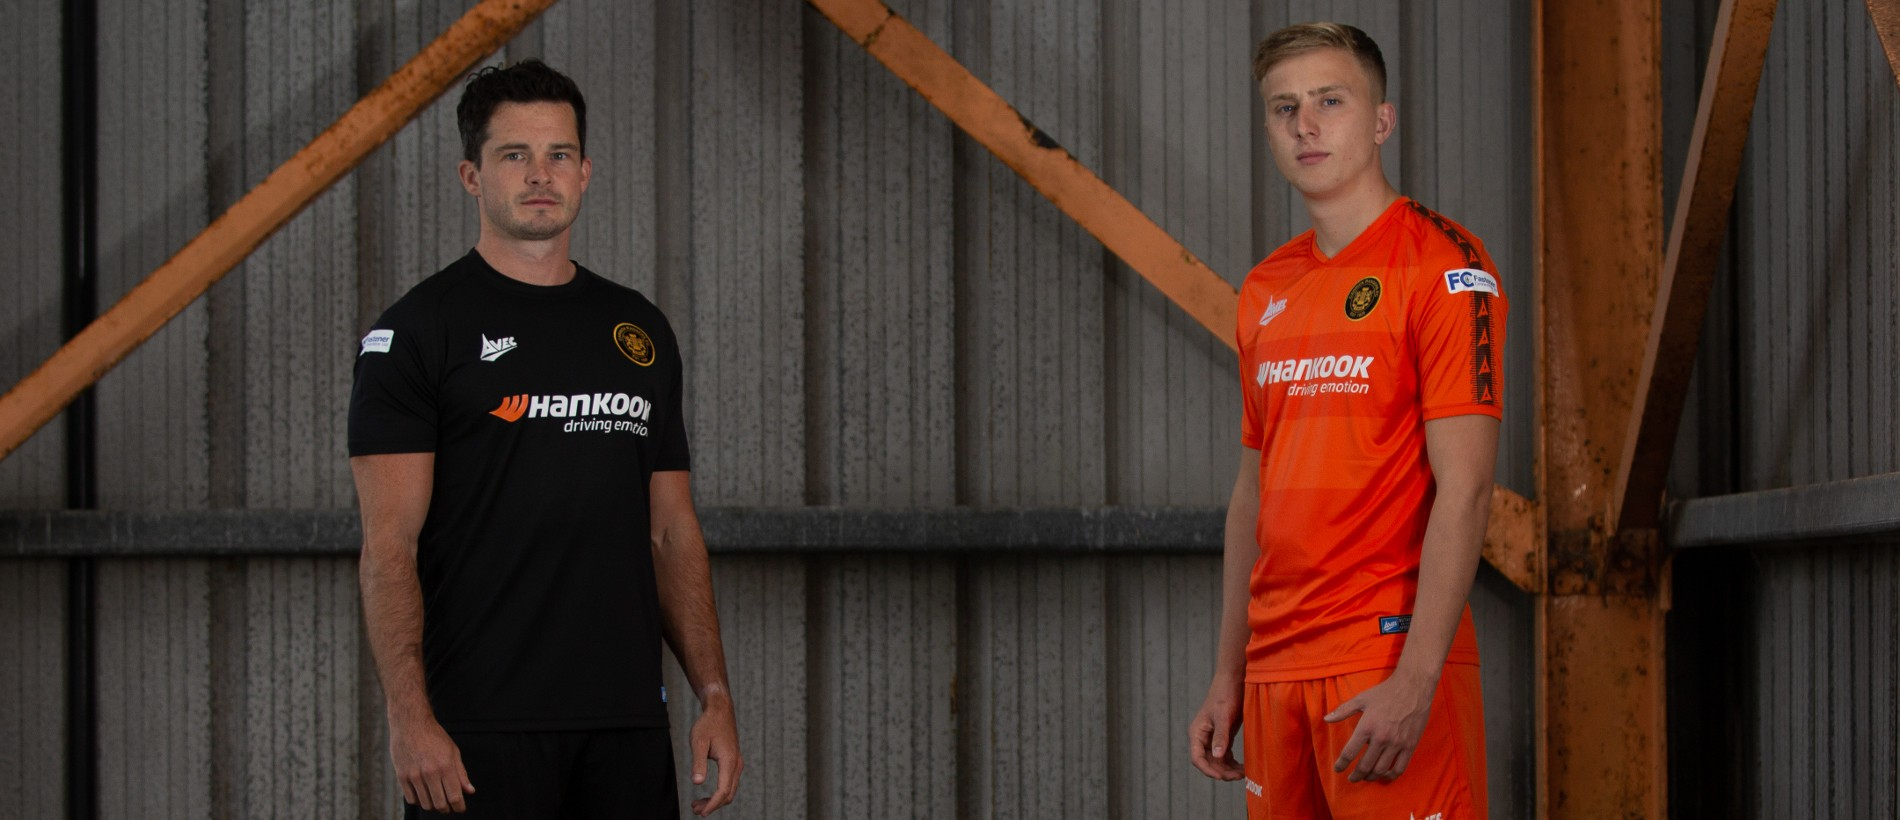 Carrick Rangers New Kit Range 2020/21